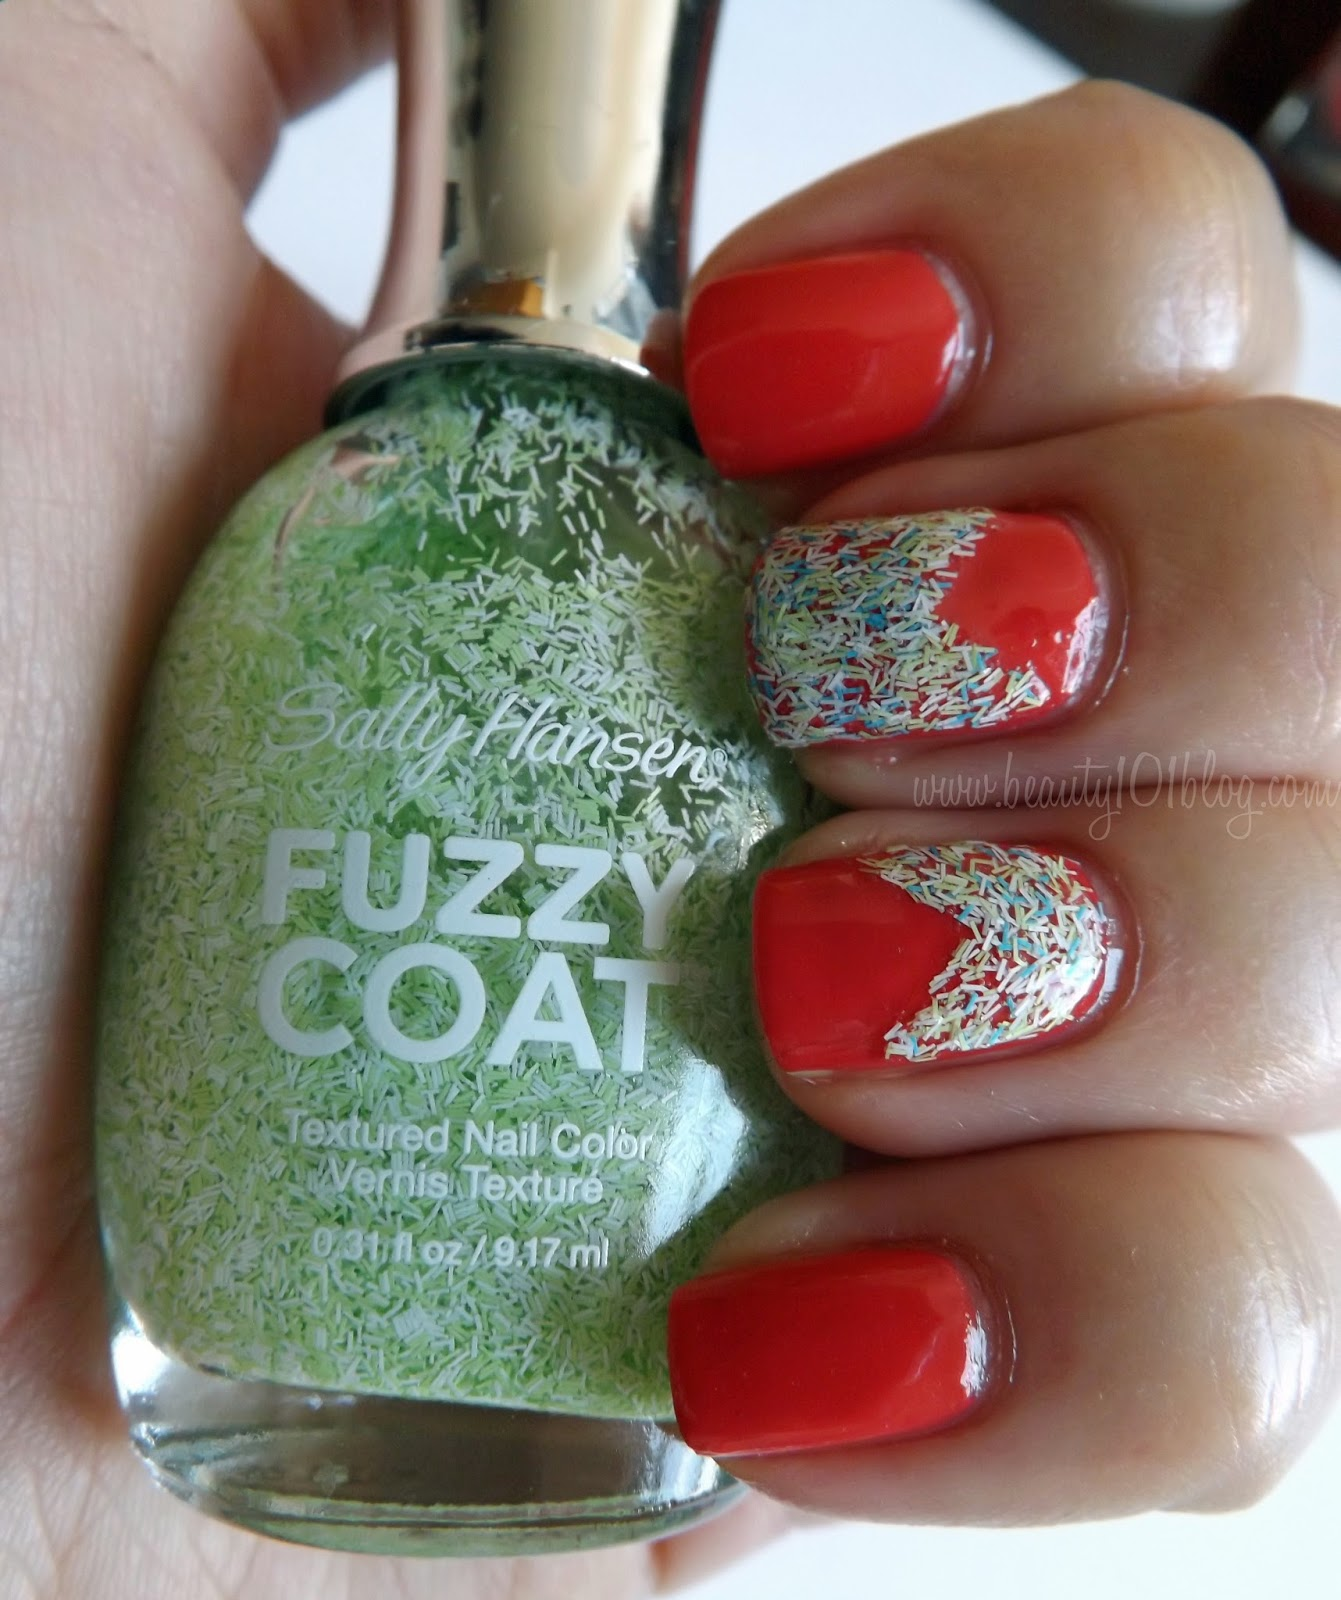 Sally Hansen Fuzzy Coat Color Block Nails Tutorial - Beauty 101